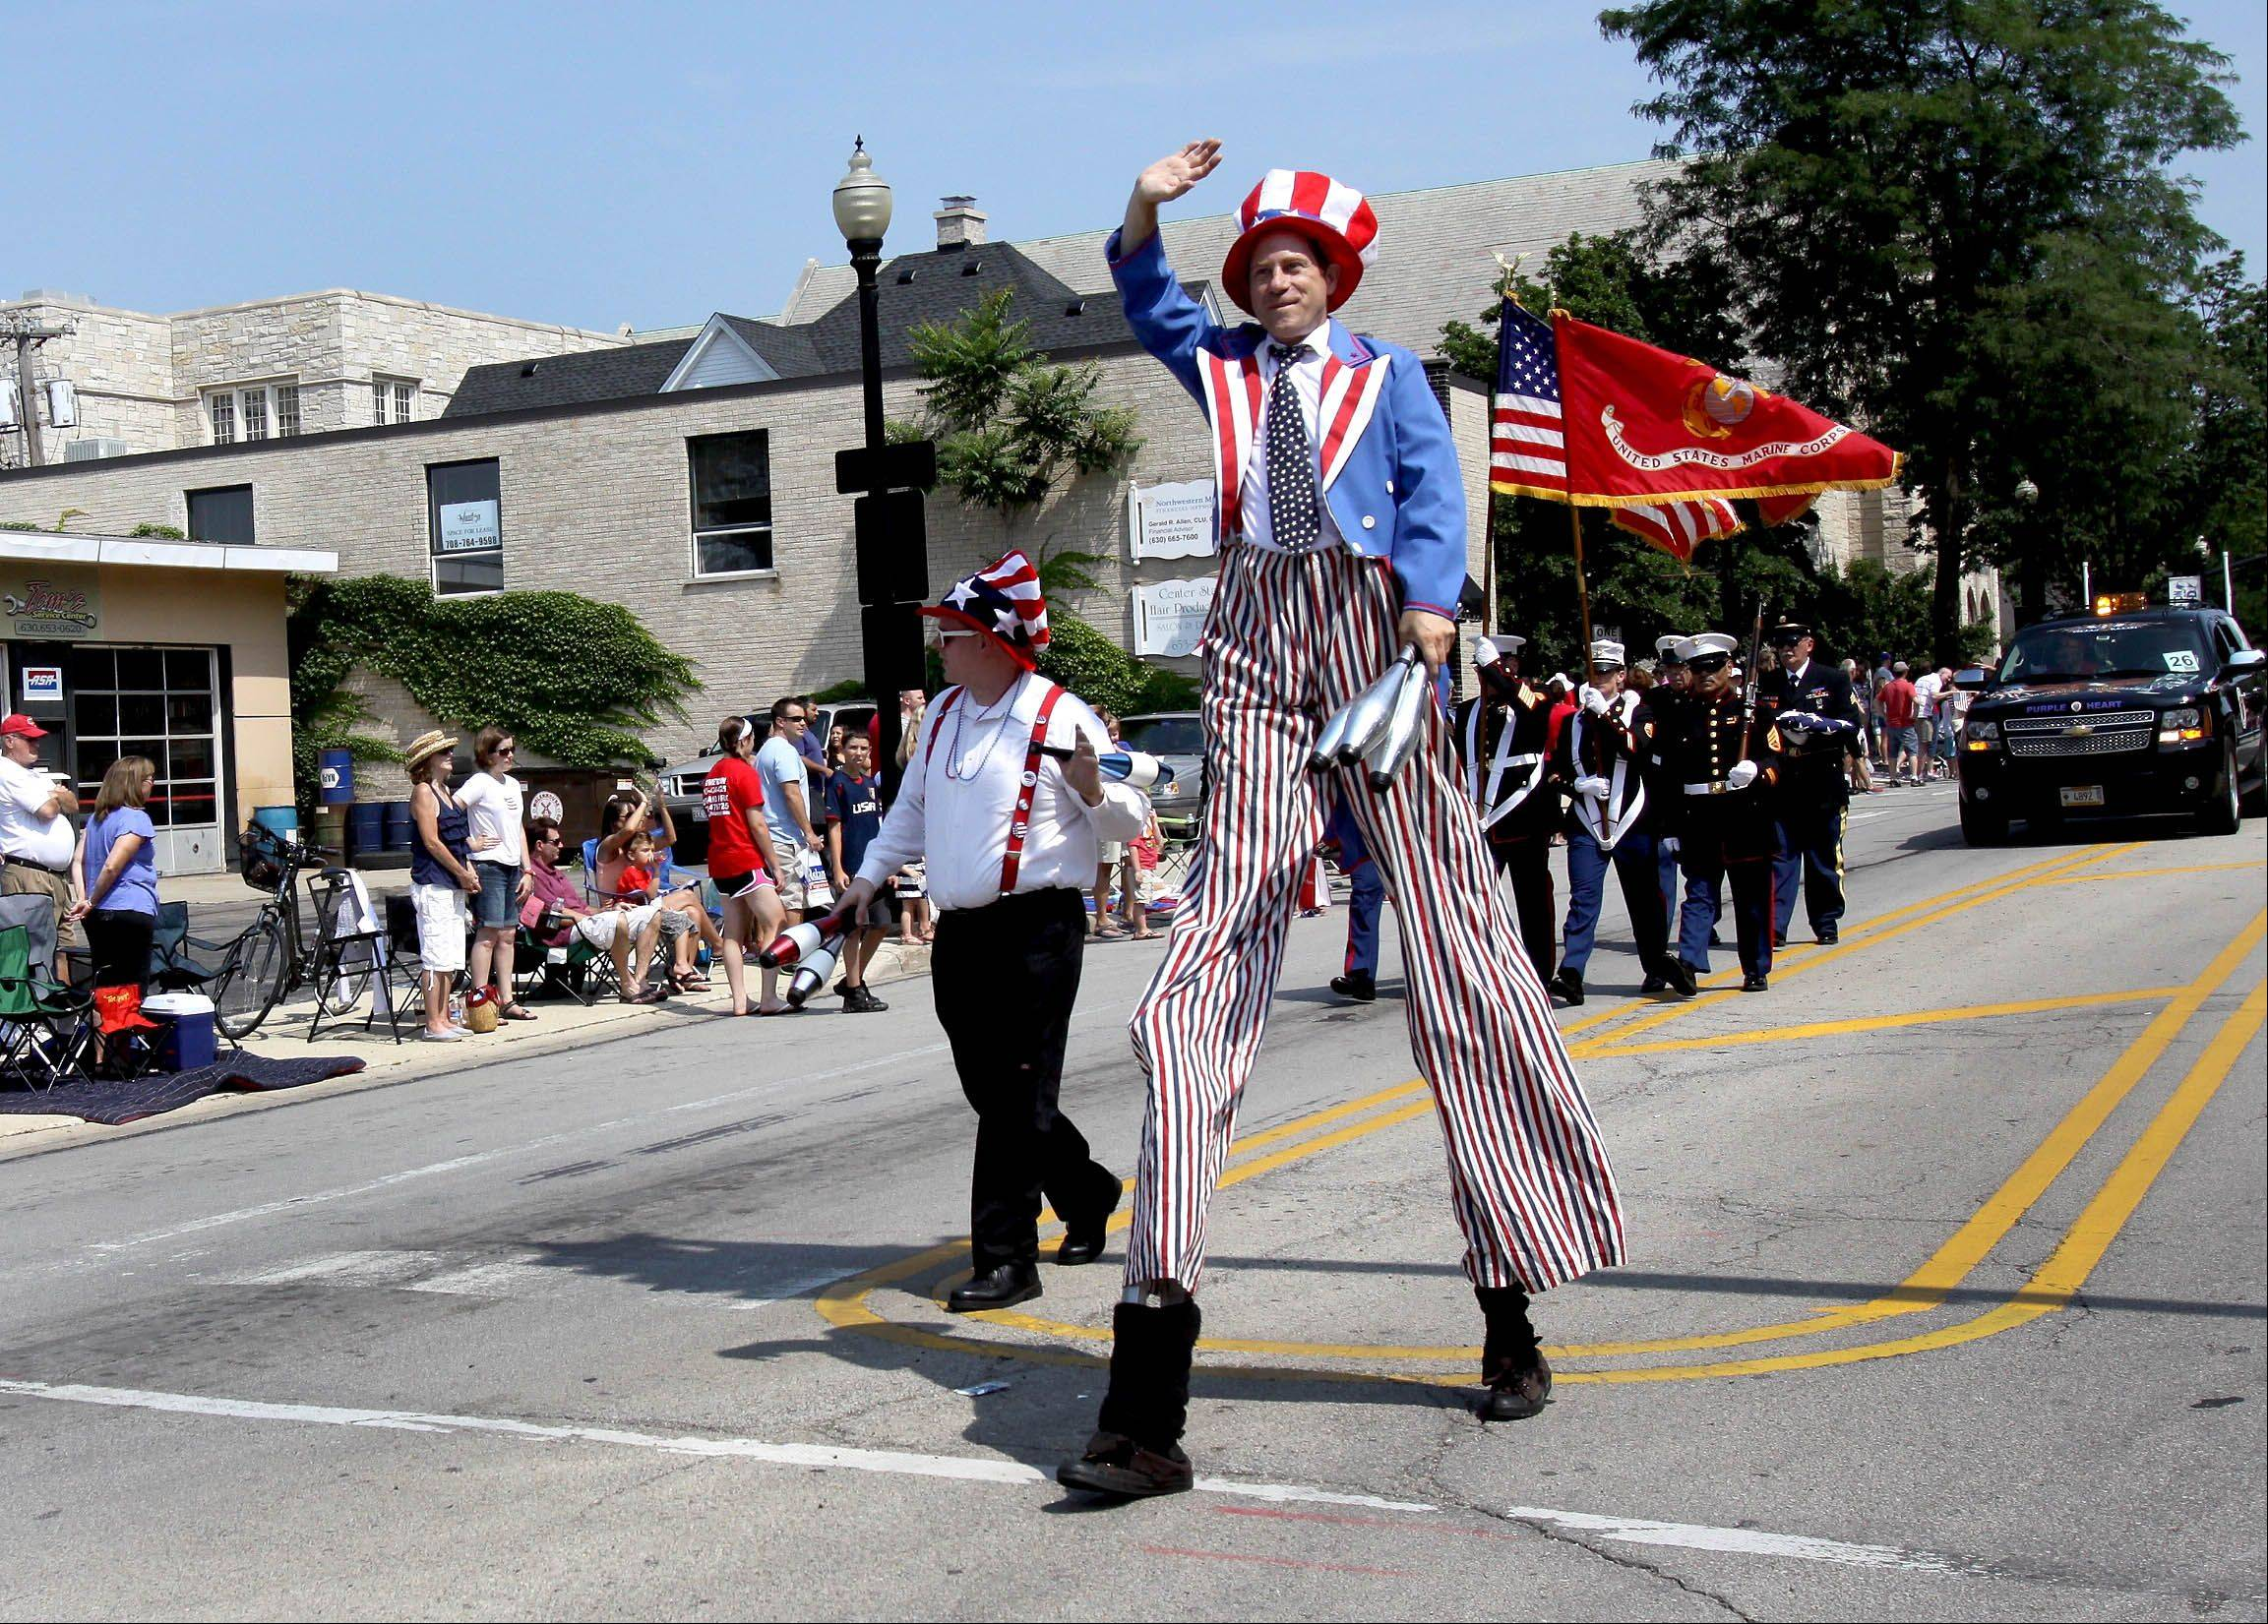 Uncle Sam makes his way down Main Street during the 4th of July parade in Wheaton on Thursday.